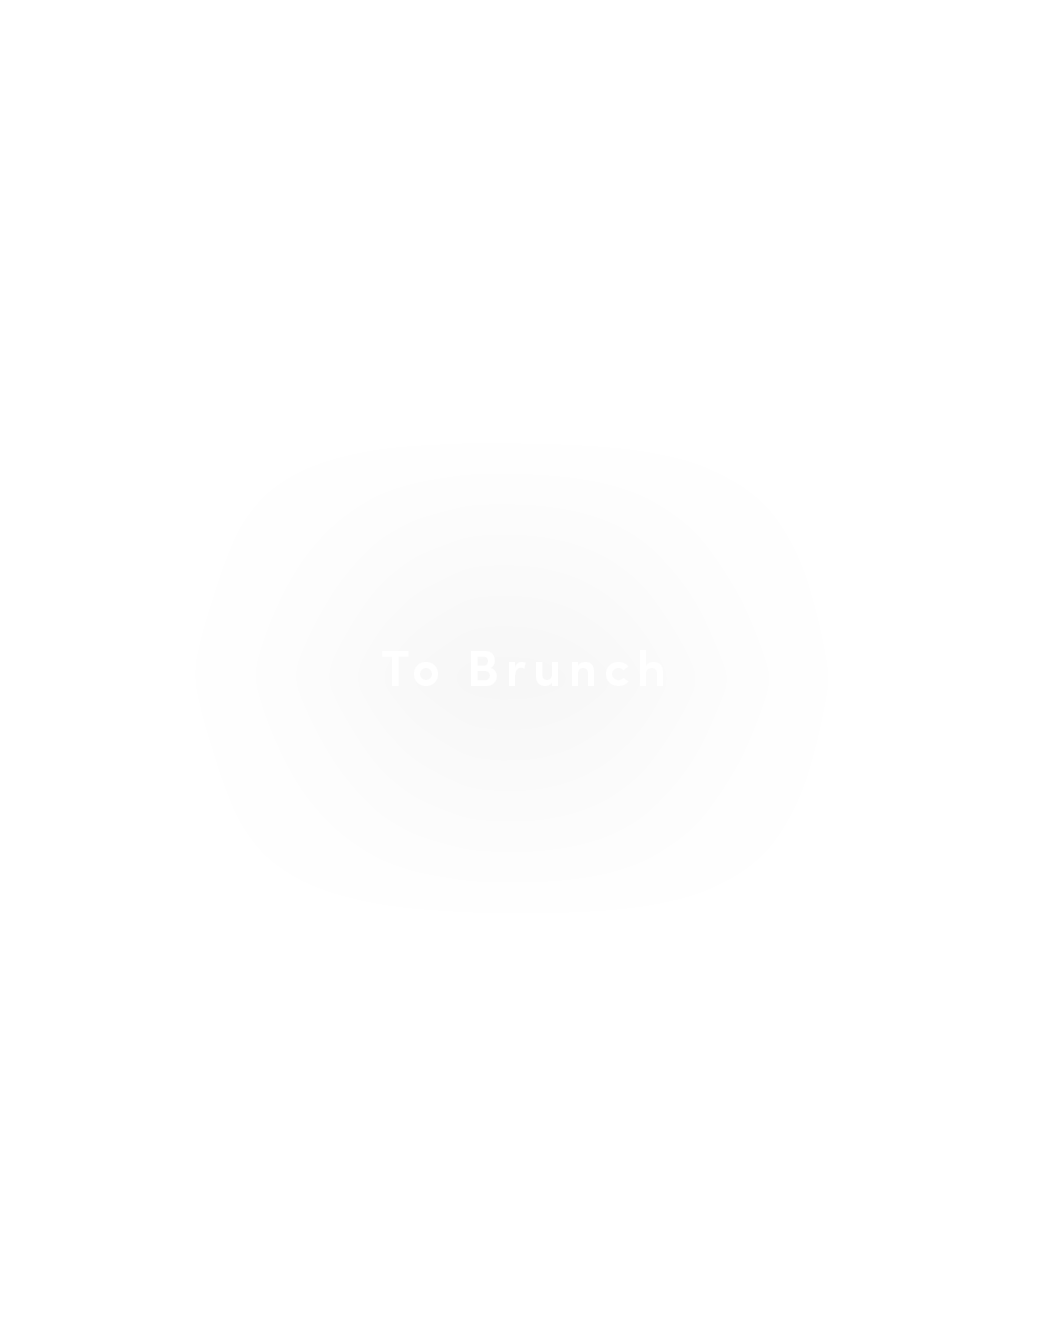 TO BRUNCH